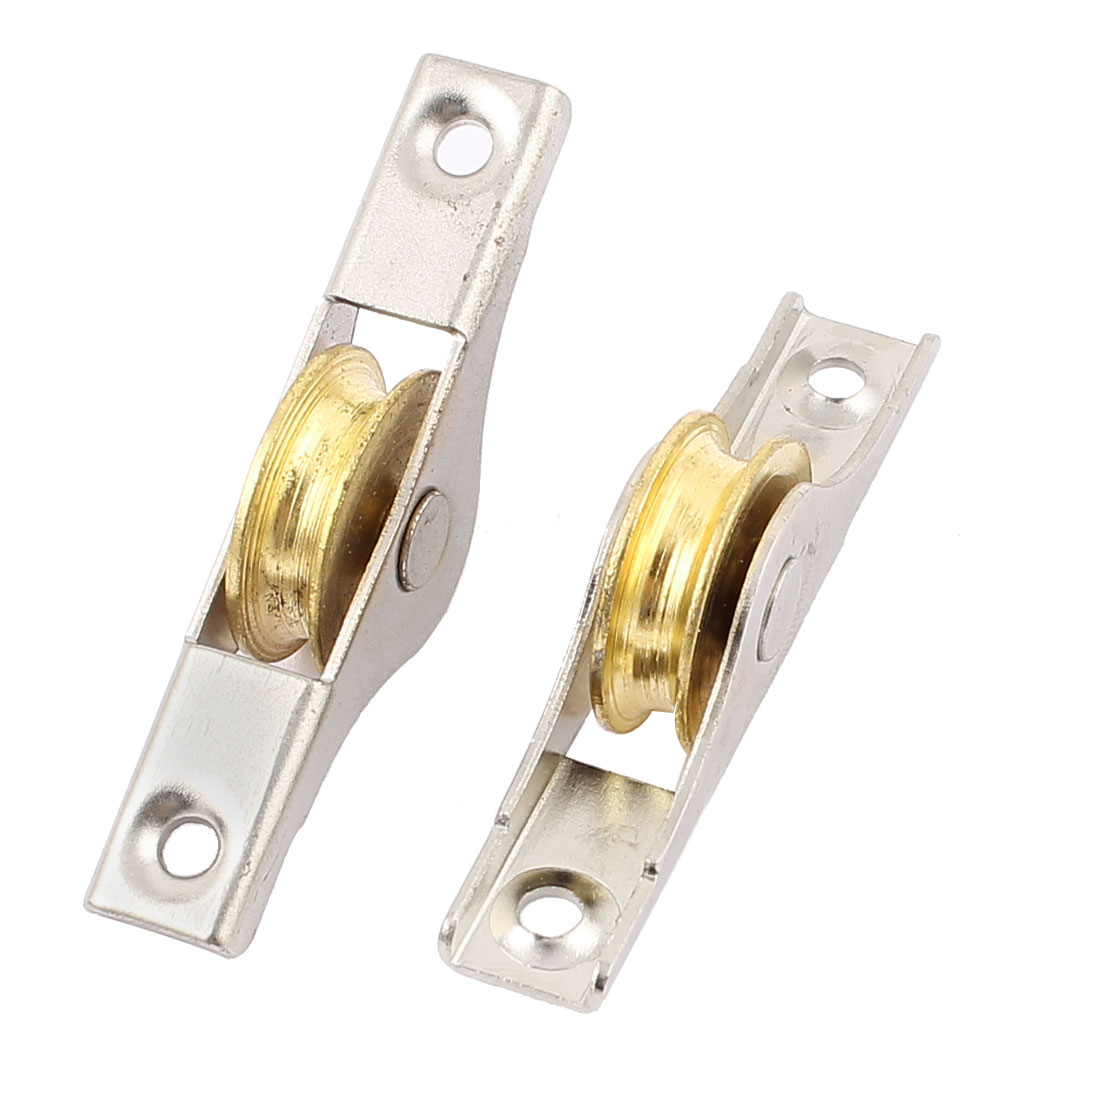 2 Pcs 5mm Slot Width 22mm Diameter Rolling Wheel Sliding Furniture Sash Doors Single Roller Axle Window Pulley